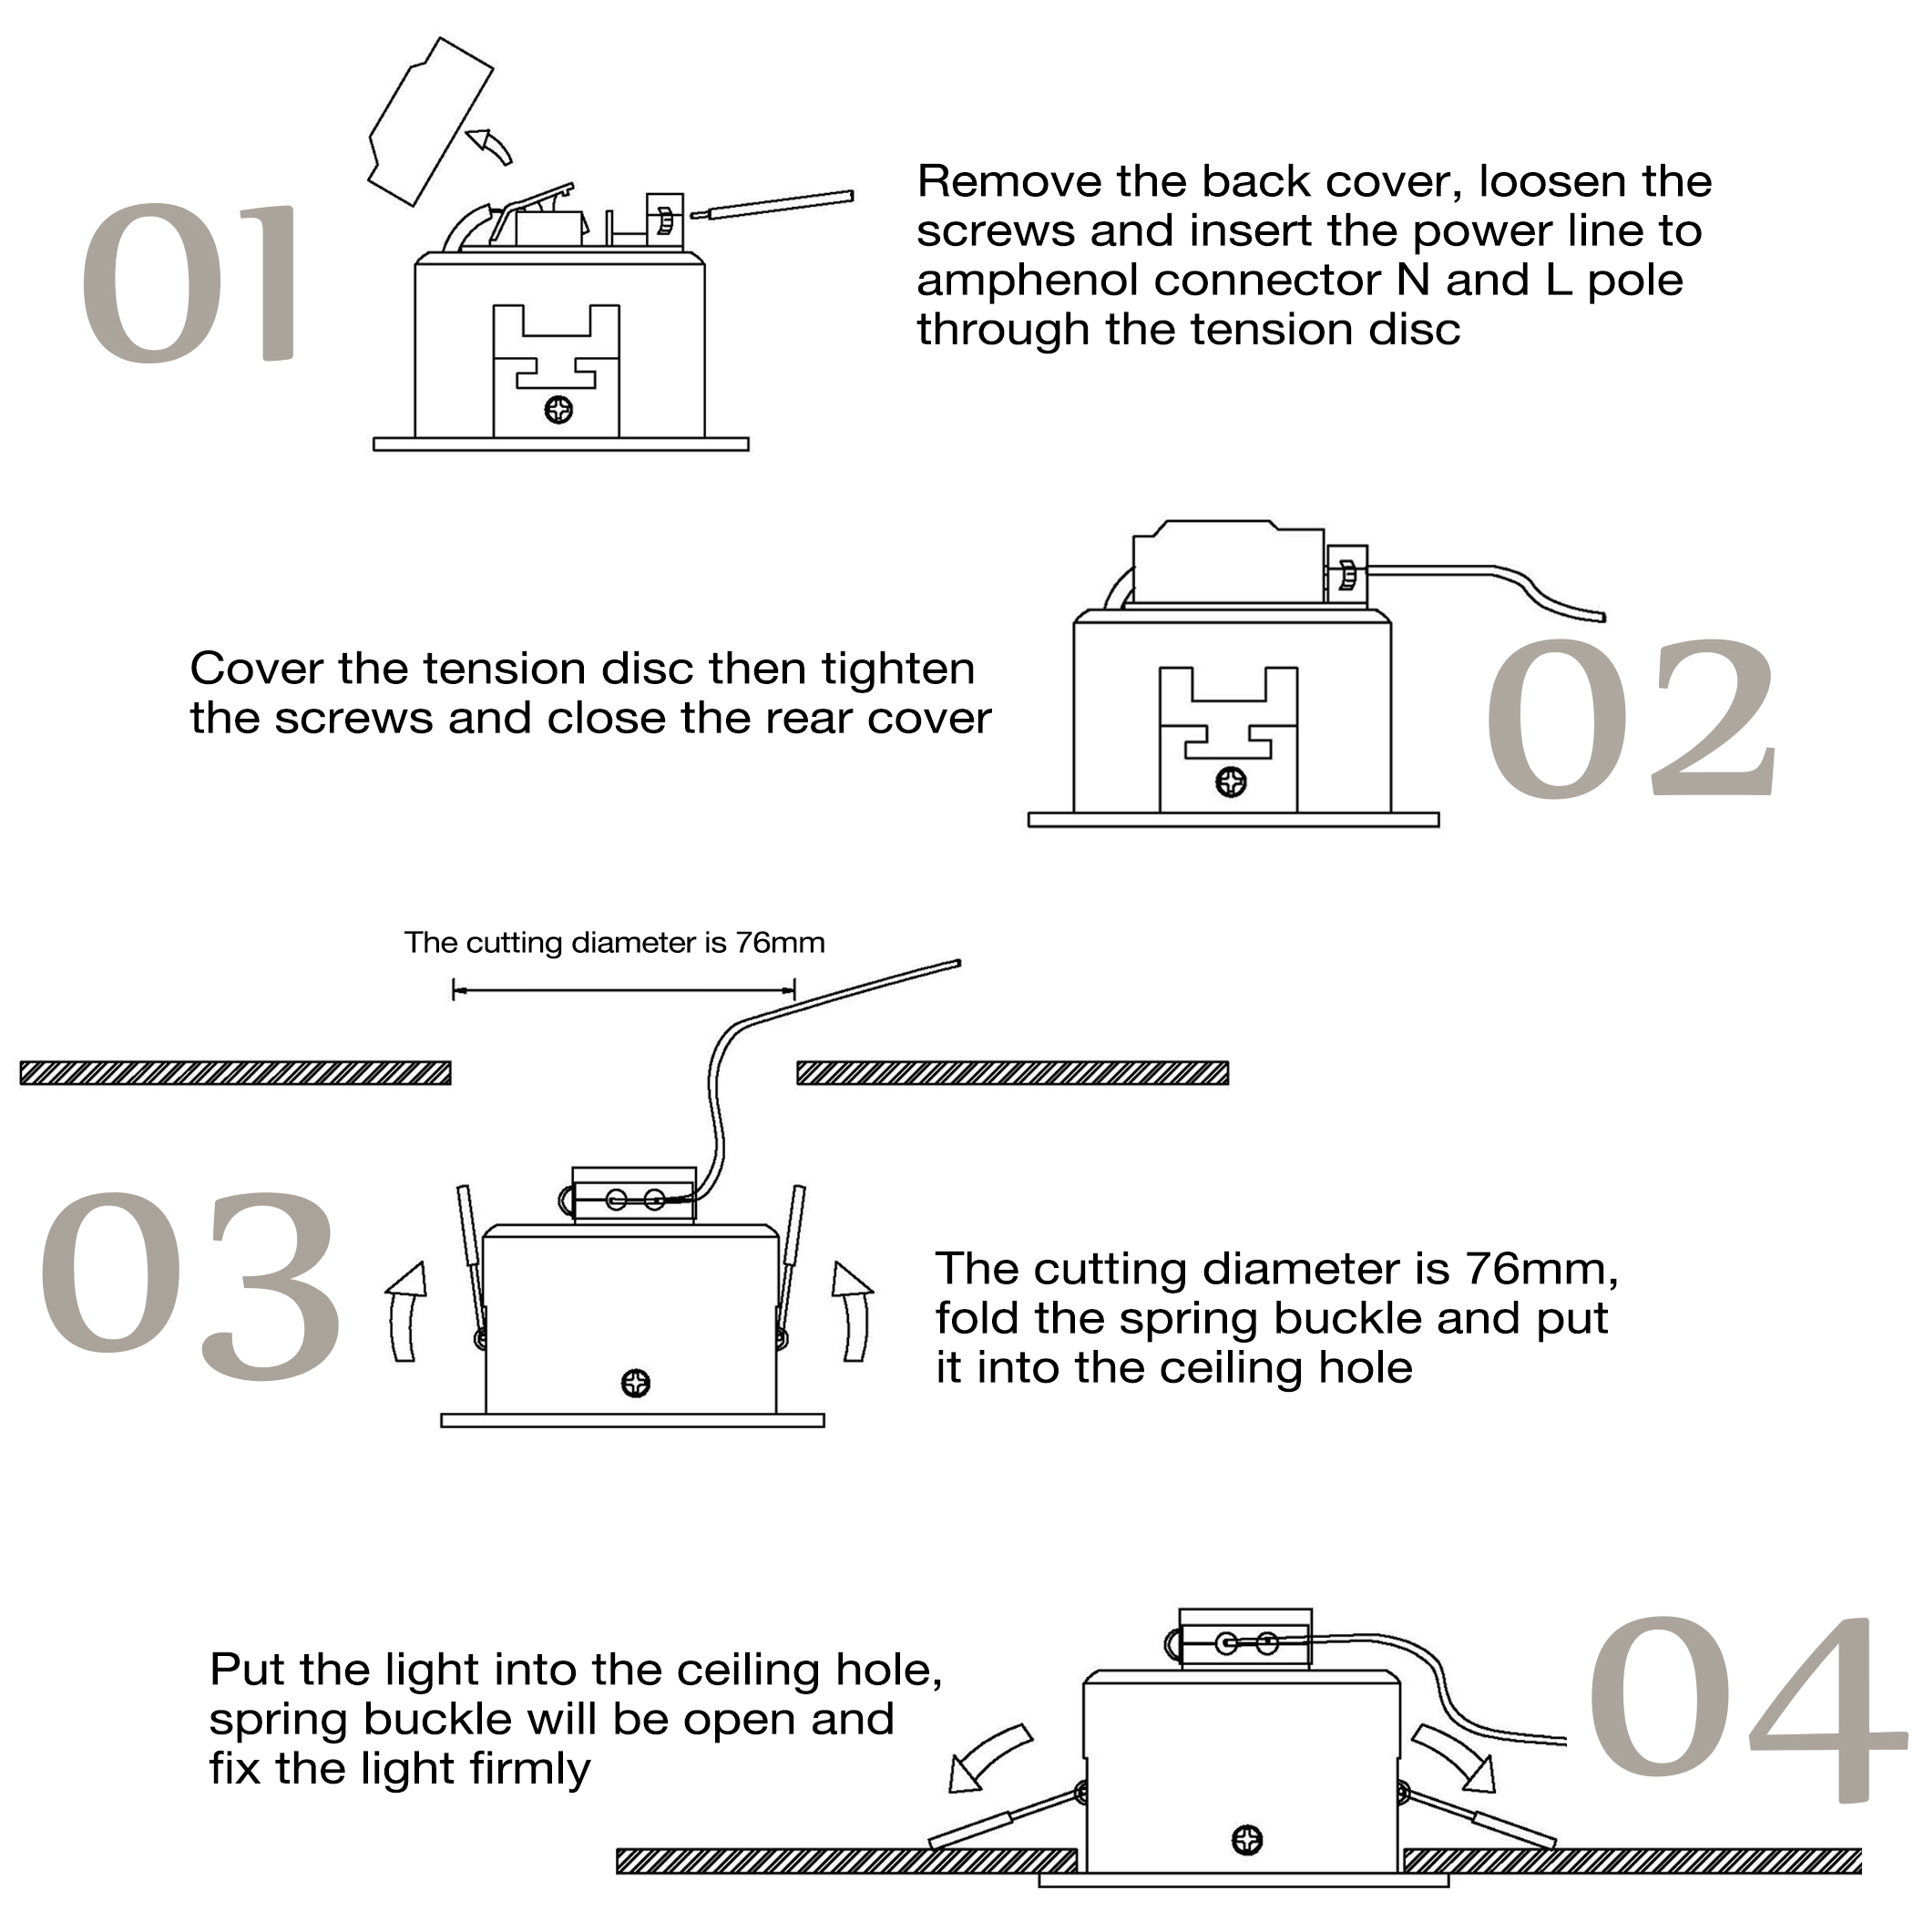 Downlight Wiring Instructions Guide And Troubleshooting Of Canned Light Switch Diagram 6w Cob Led Recessed Best Downlights For Home Fitting